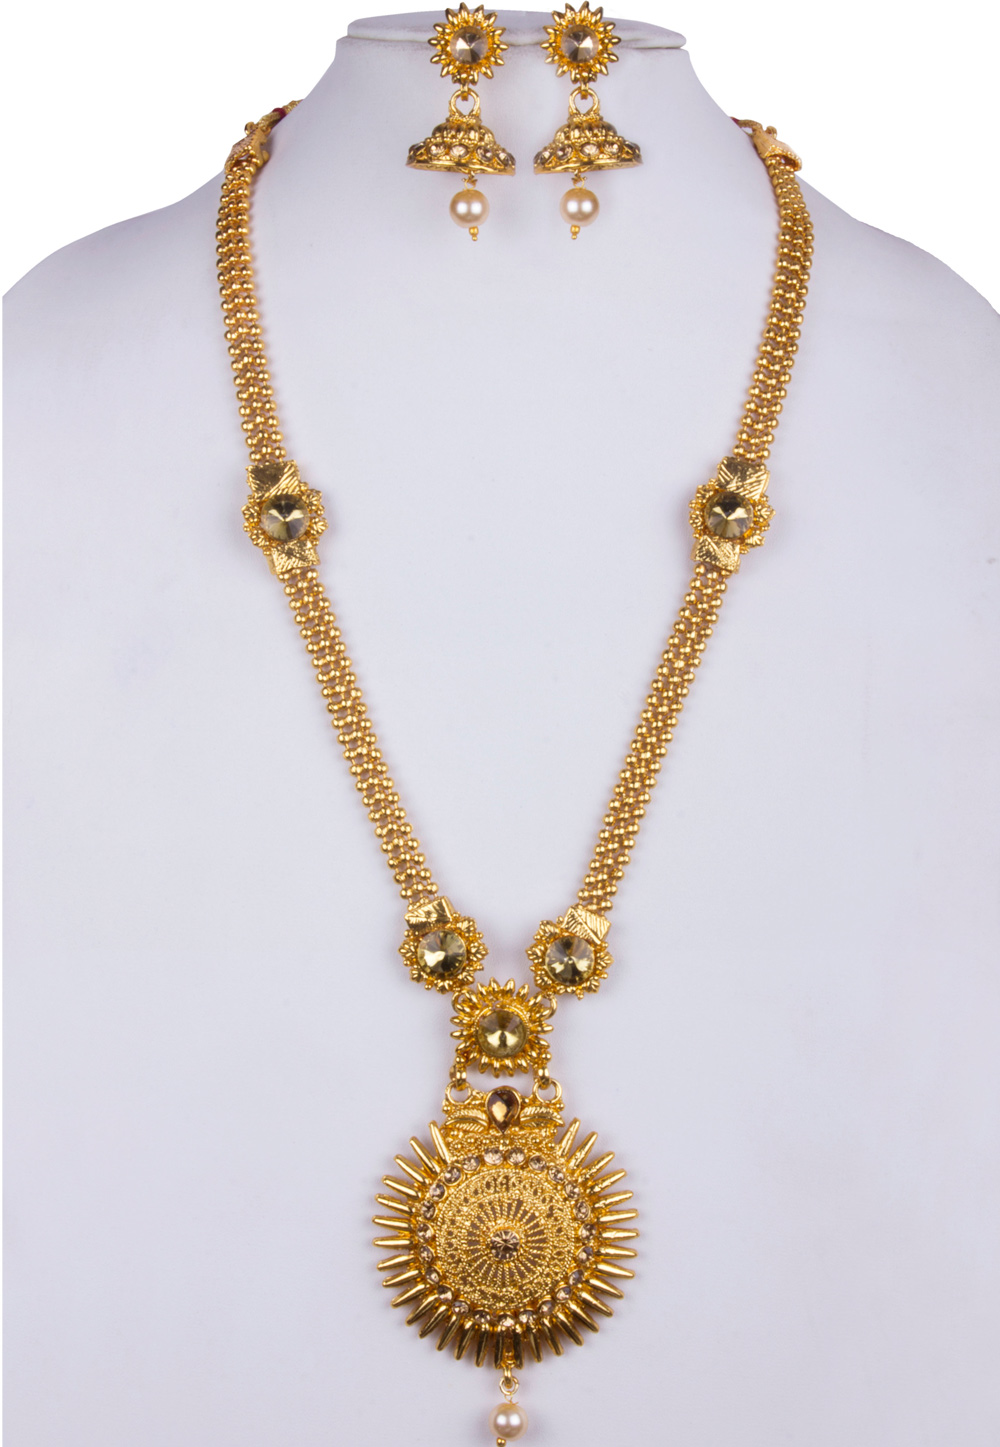 Golden Alloy Necklace With Earrings 157138